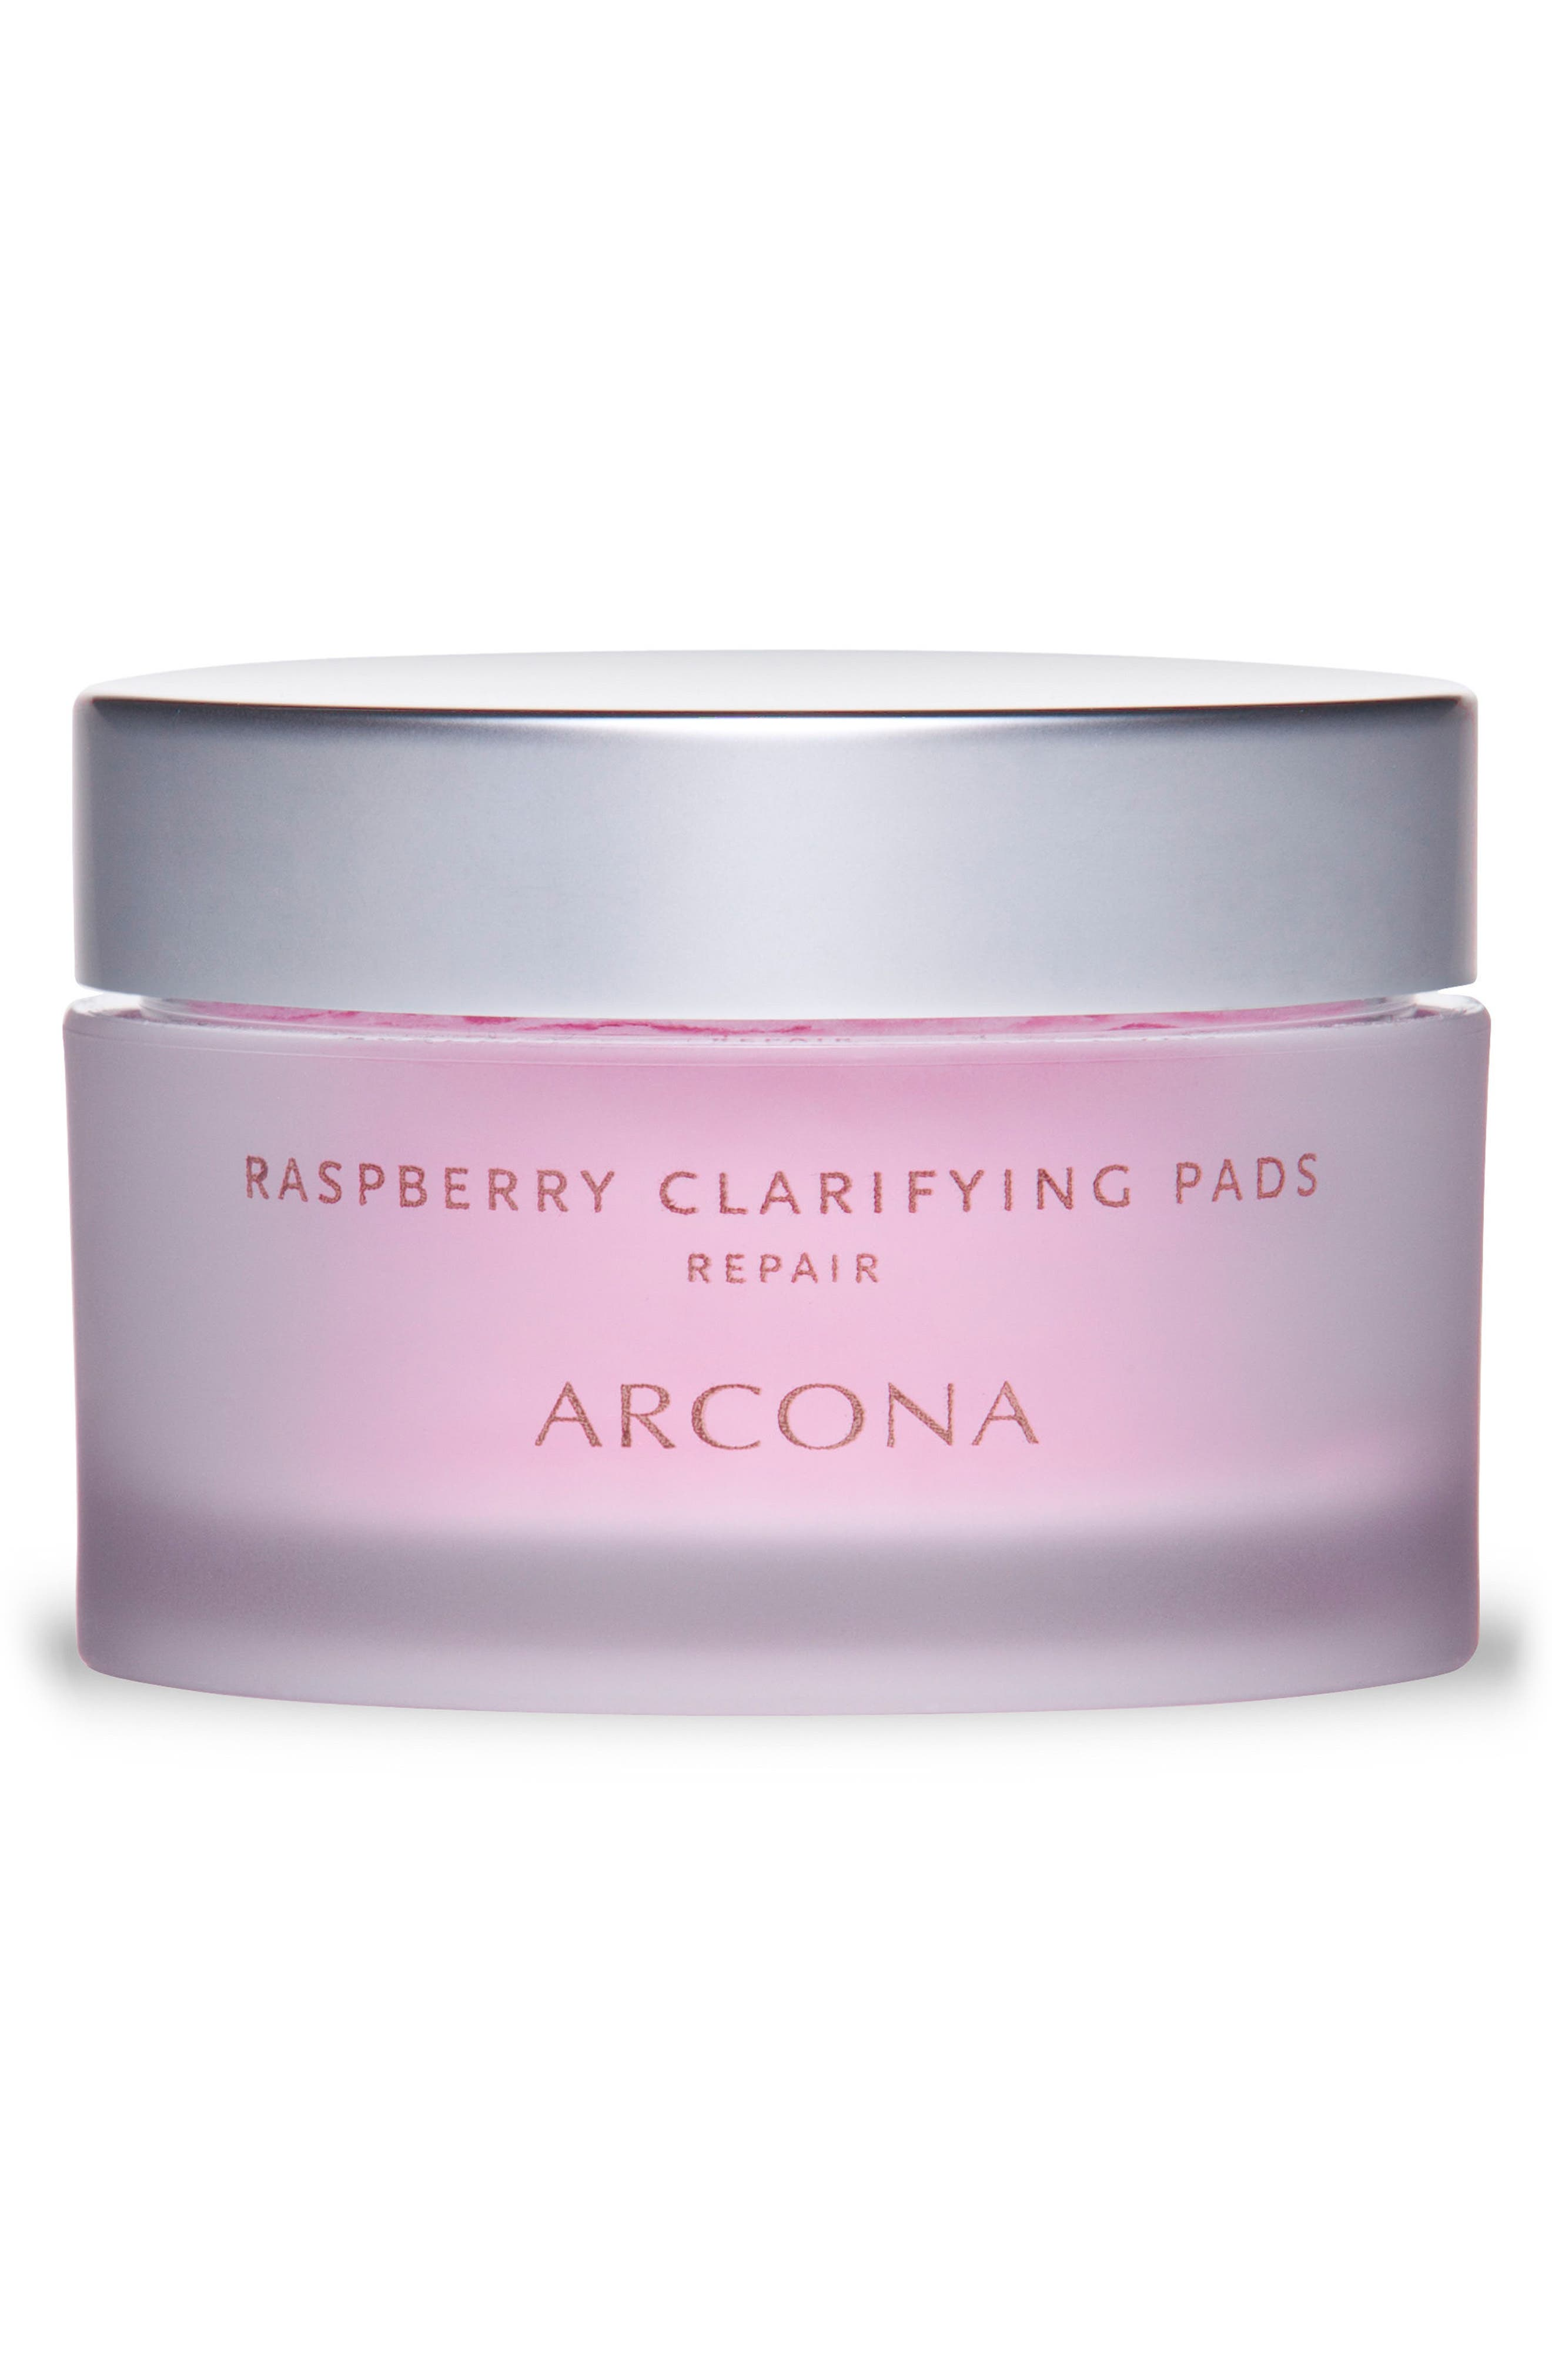 Raspberry Clarifying Pads,                             Main thumbnail 1, color,                             NO COLOR